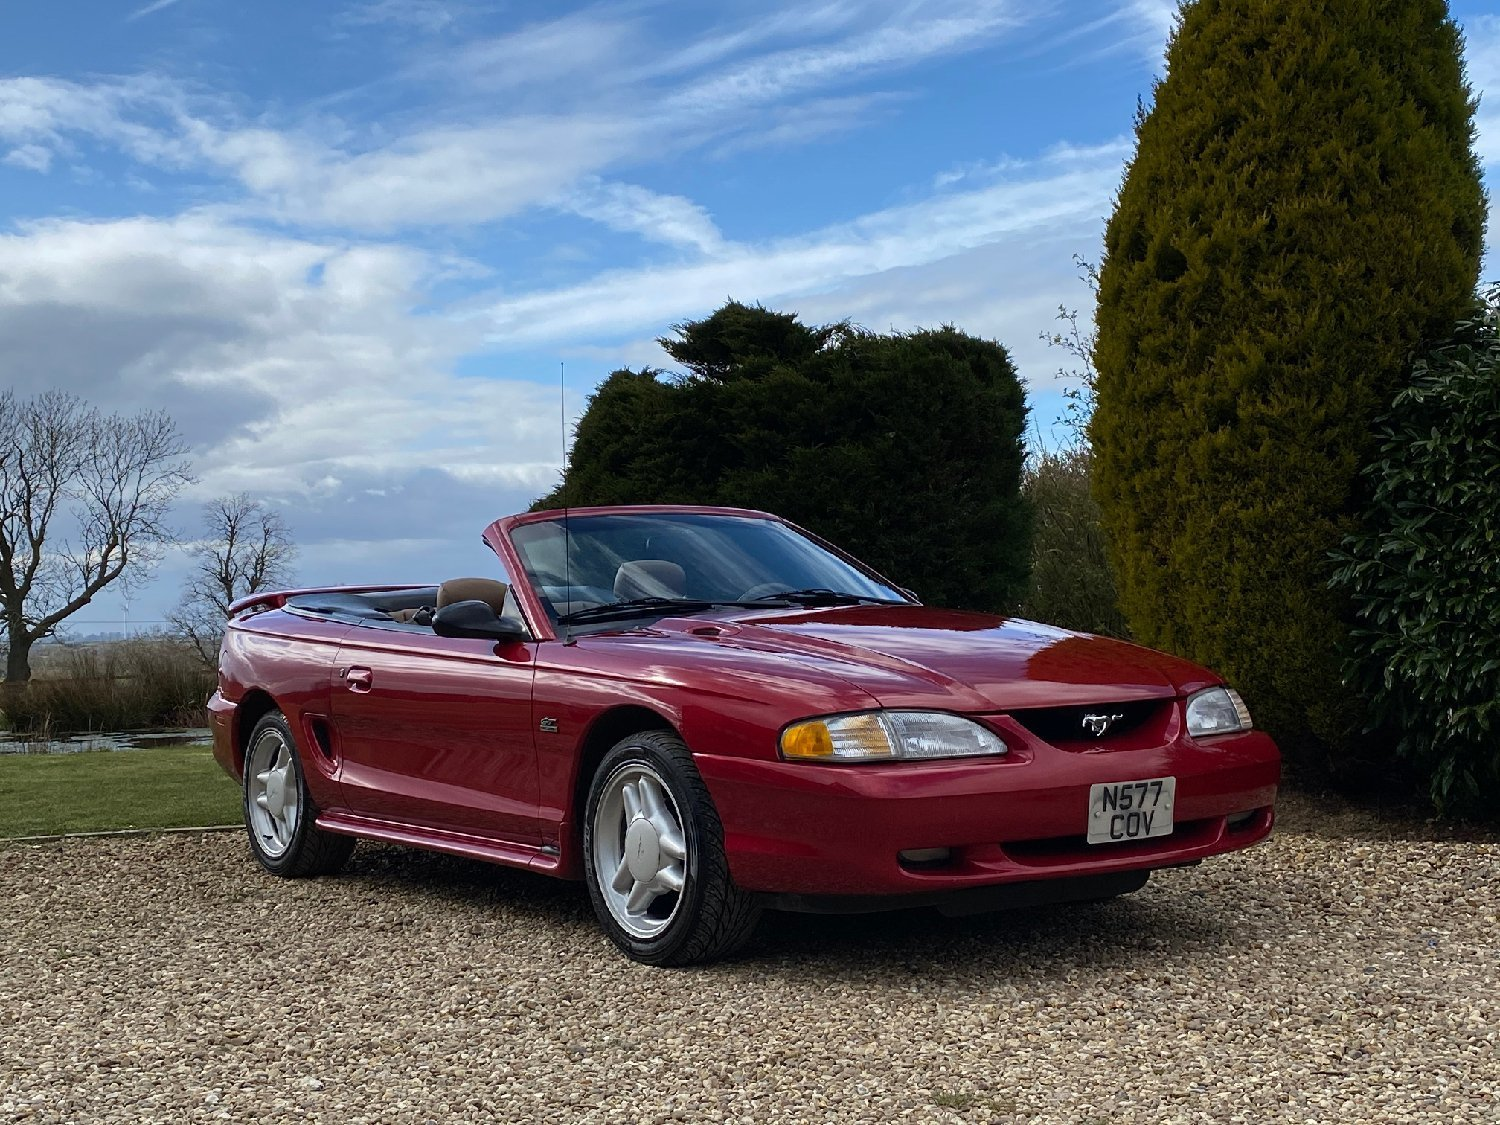 1995 Ford Mustang GT 5 Litre convertible  For Sale (picture 3 of 6)